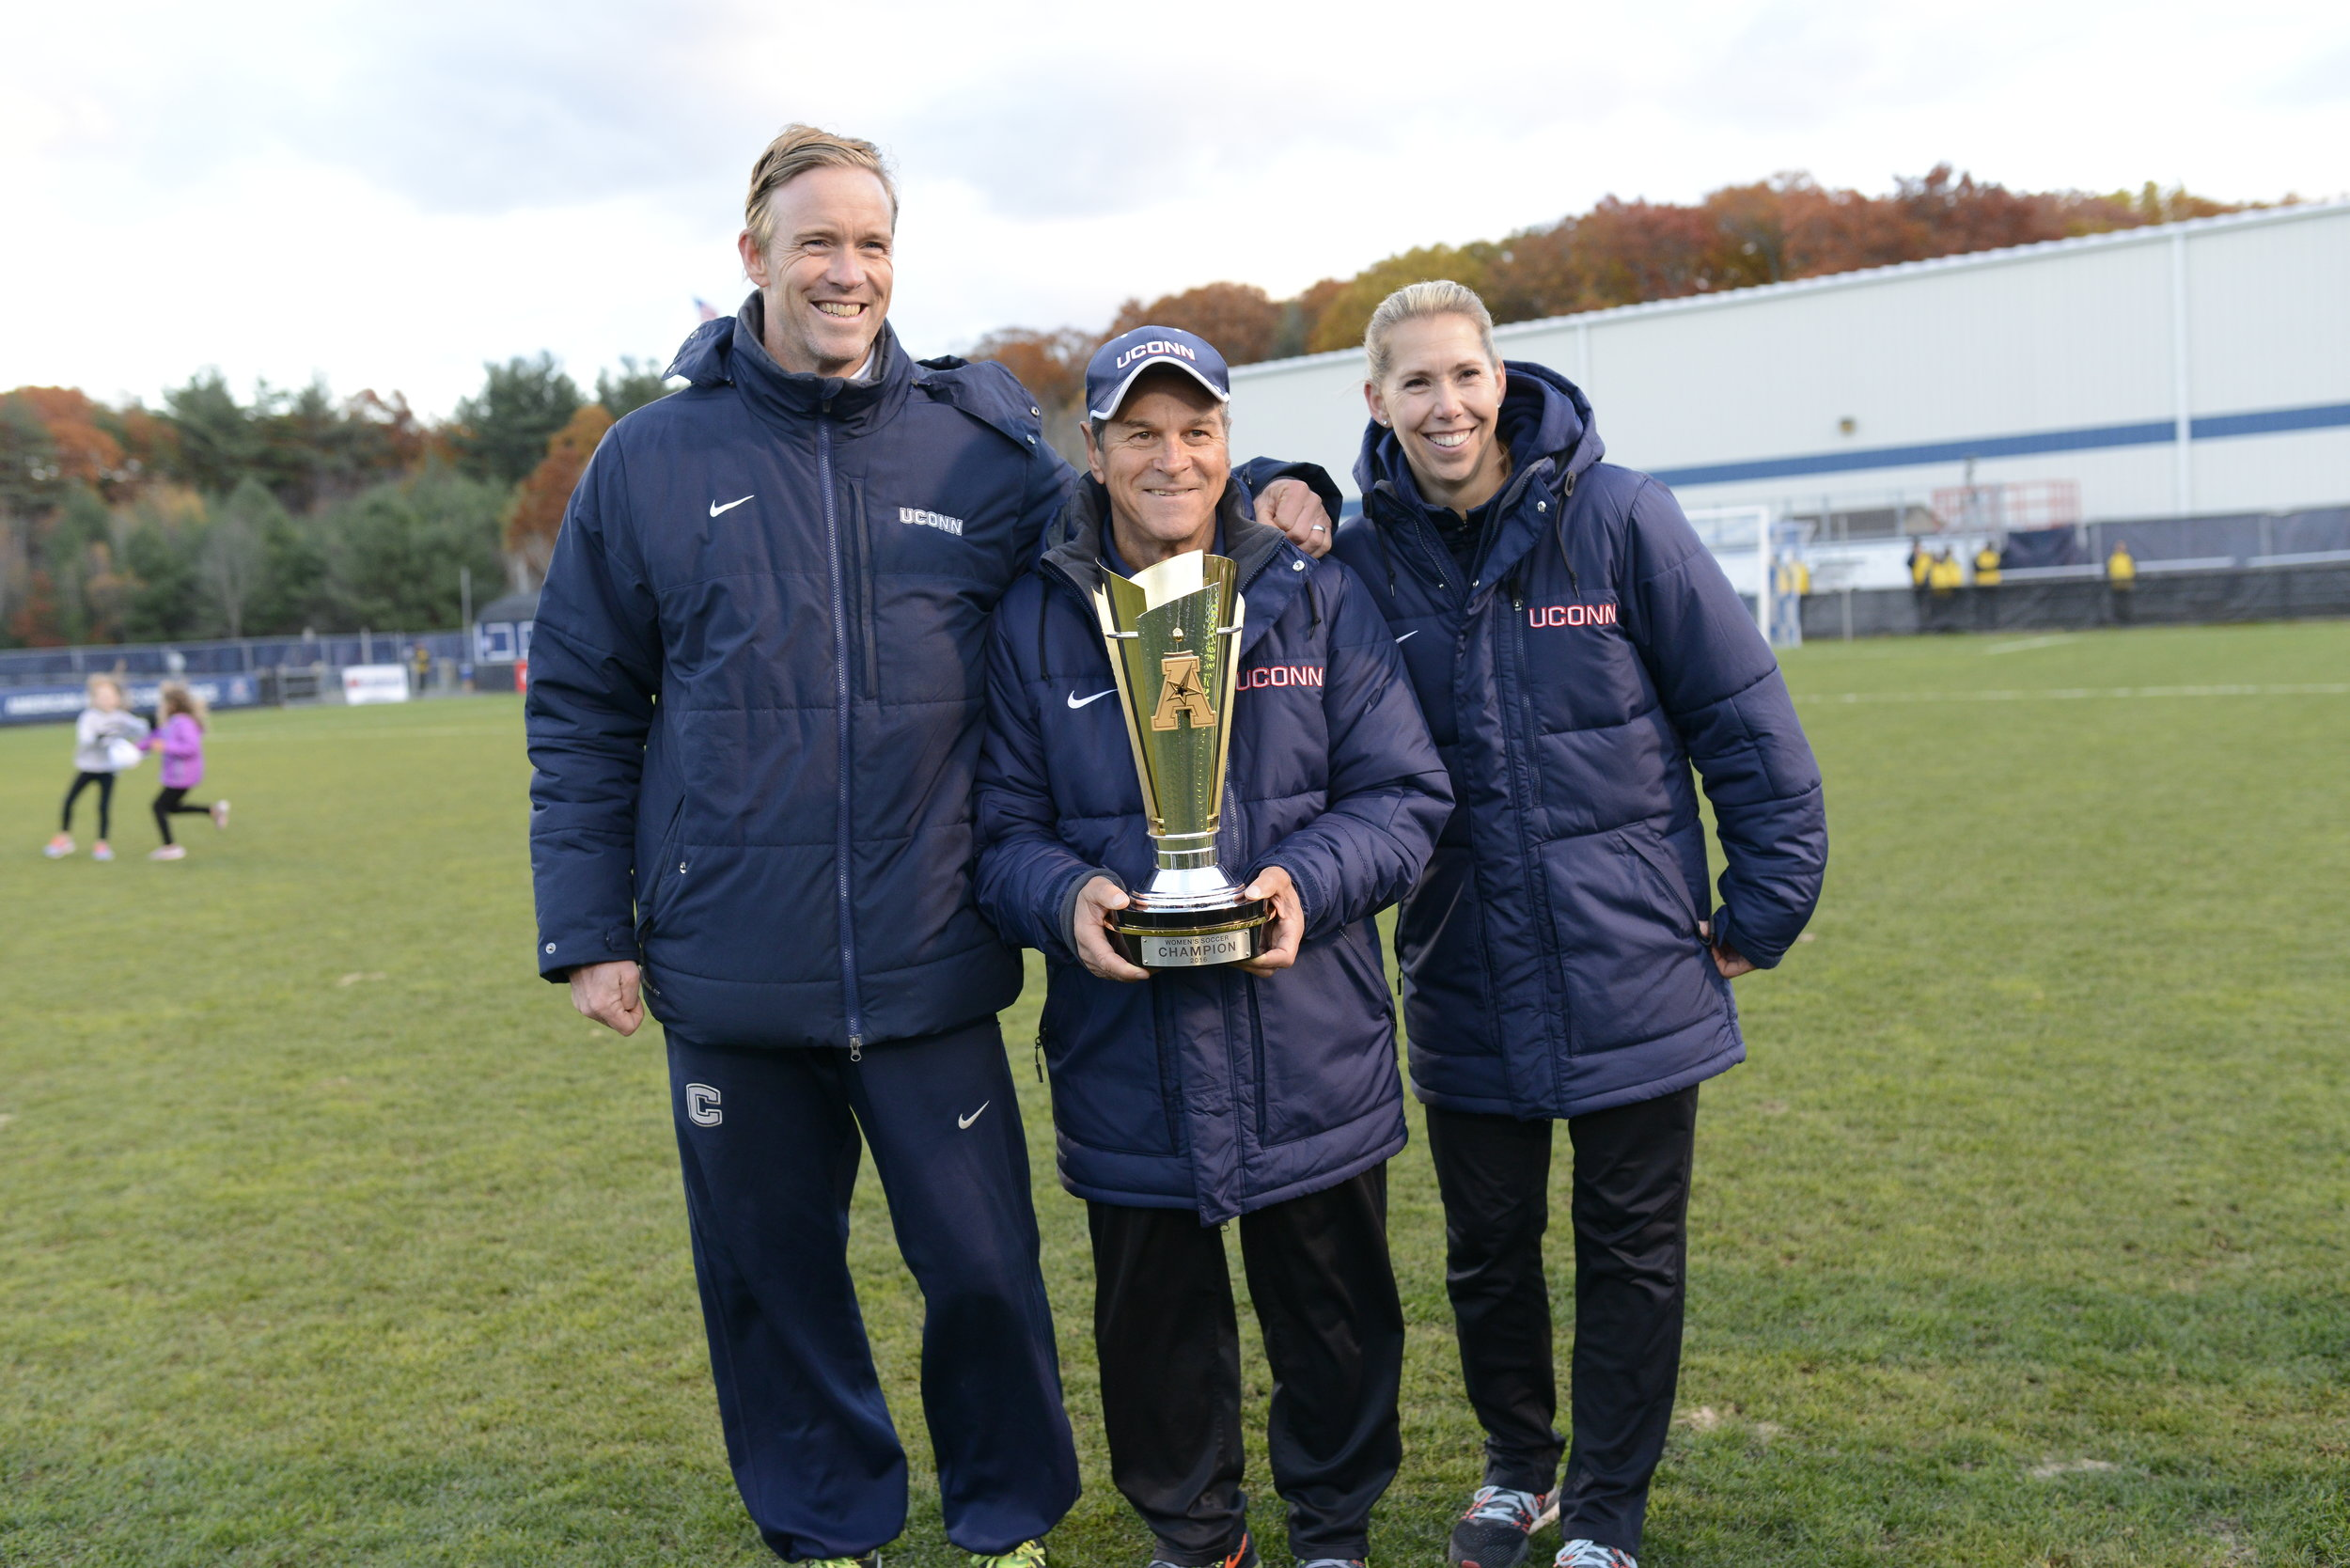 From left to right: Associate head coach Zac Shaw, head coach Len Tsantiris and associate head coach Margaret Rodriguez pose with the American Athletic Conference championship trophy following a 1-0 win over SMU on Sunday, Nov. 6 at Joseph J. Morrone Stadium. Tsantiris was named AAC co-coach of the year, sharing the honors with SMU's head coach. (Jason Jiang/The Daily Campus)